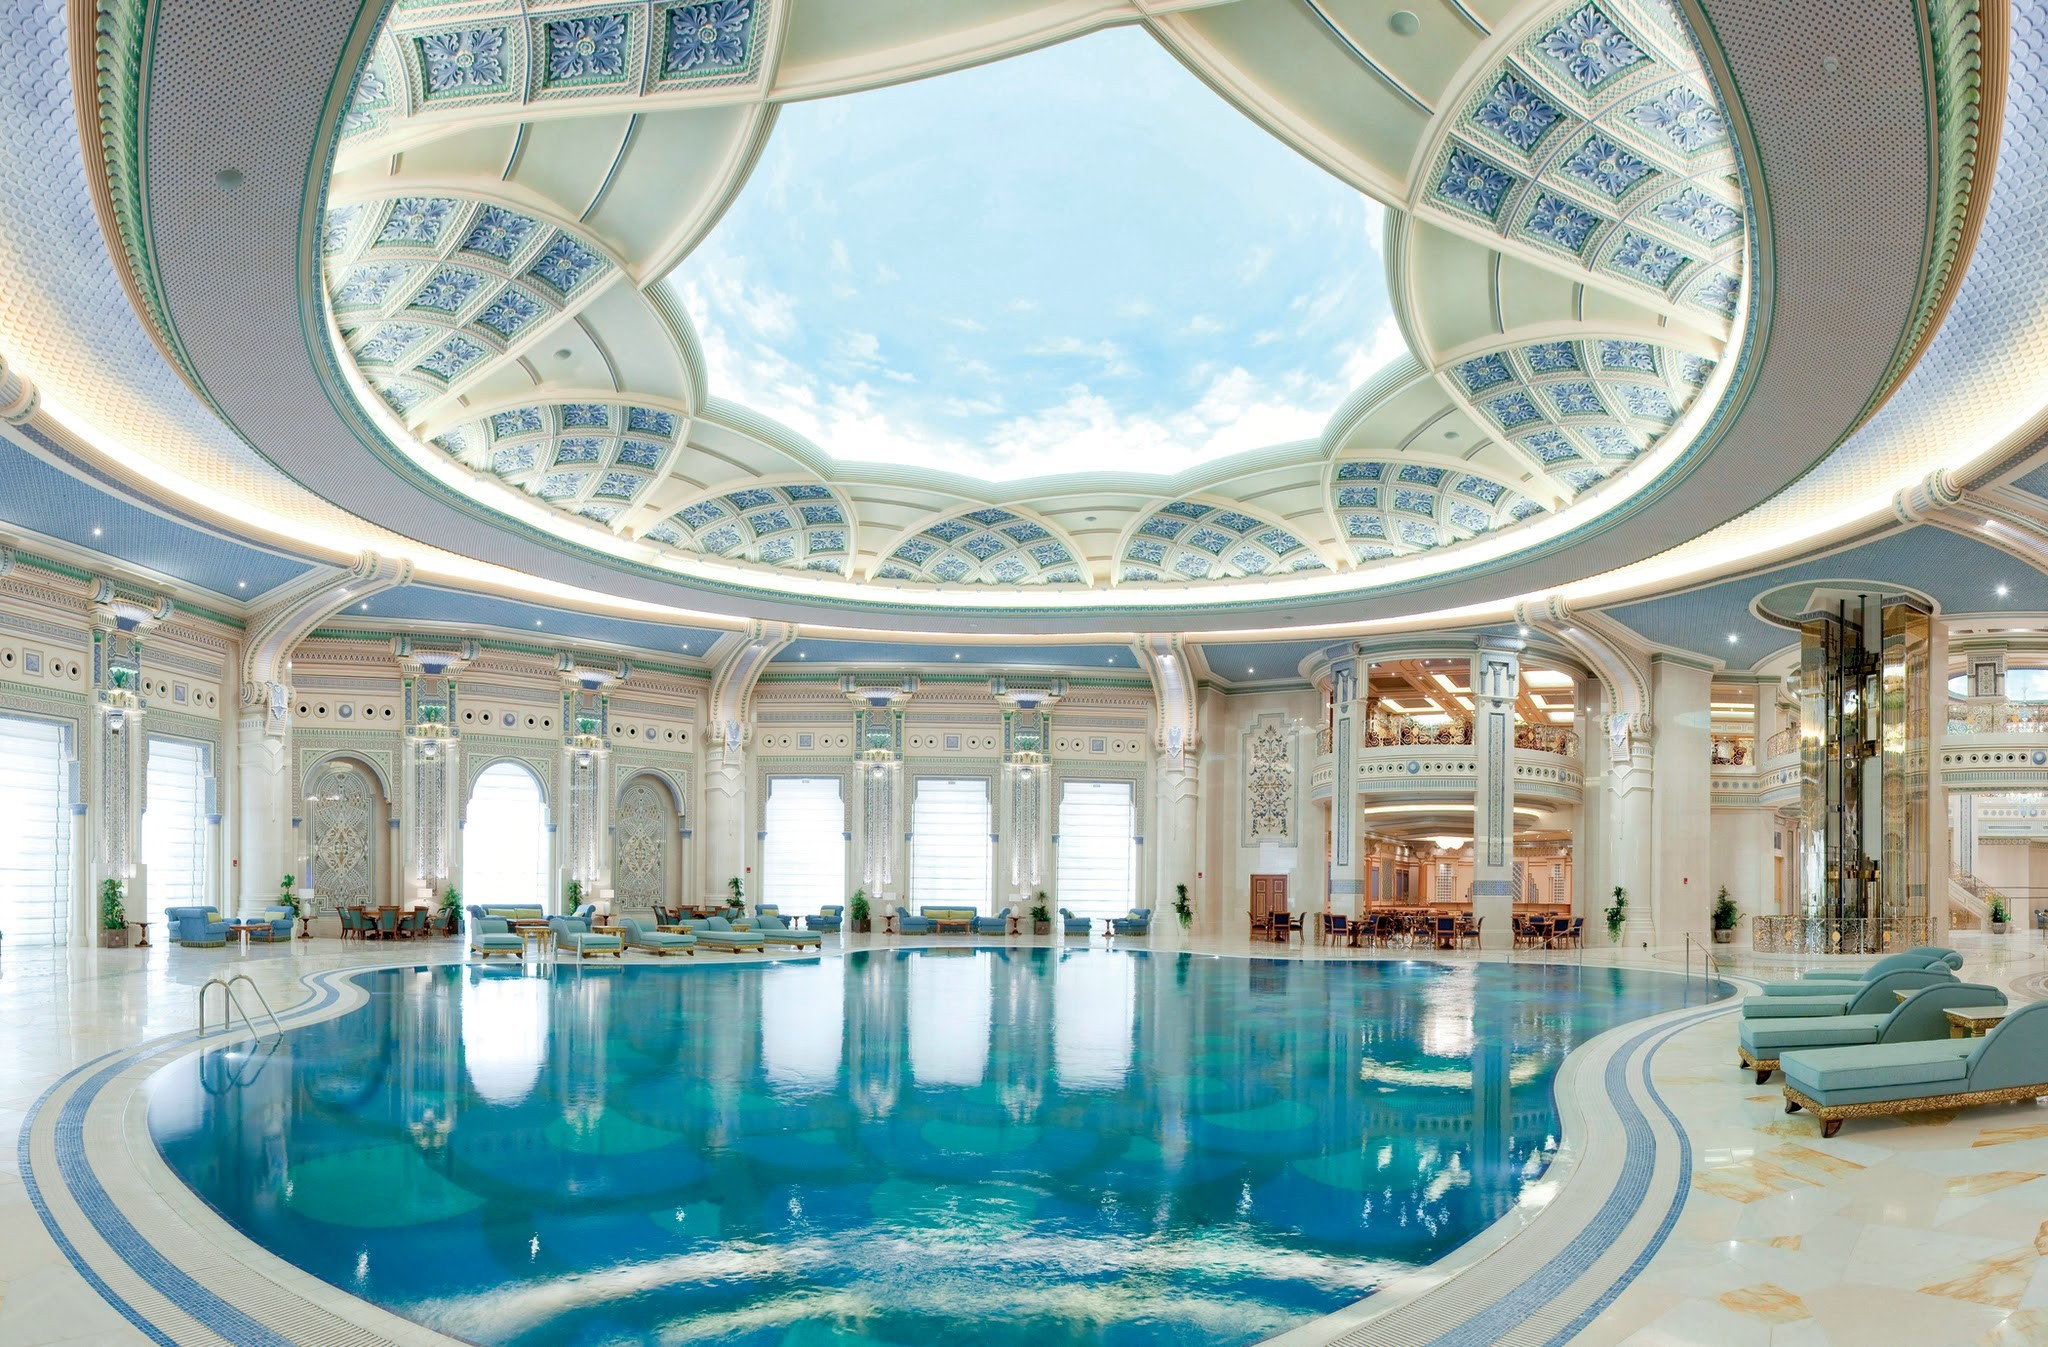 07 photos la prison des hauts dirigeants saoudiens - Hotels in riyadh with swimming pools ...